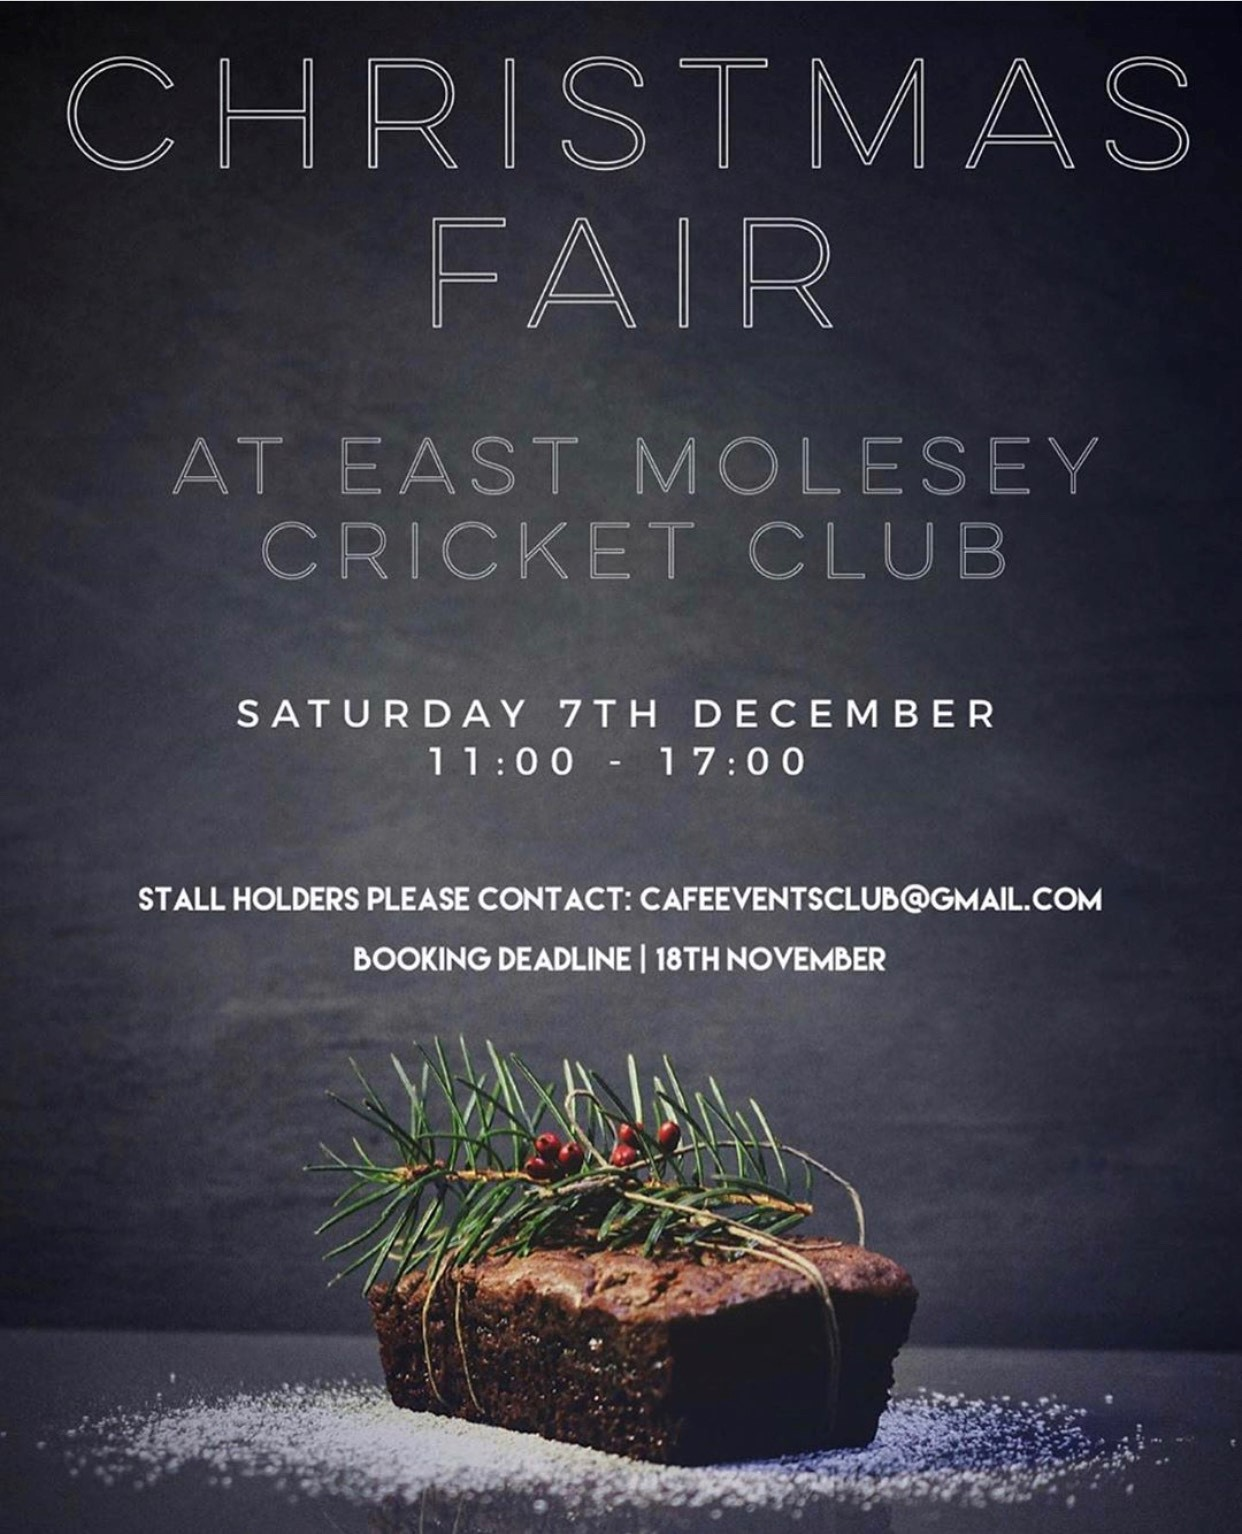 Christmas fair at East Molesey Cricket Club